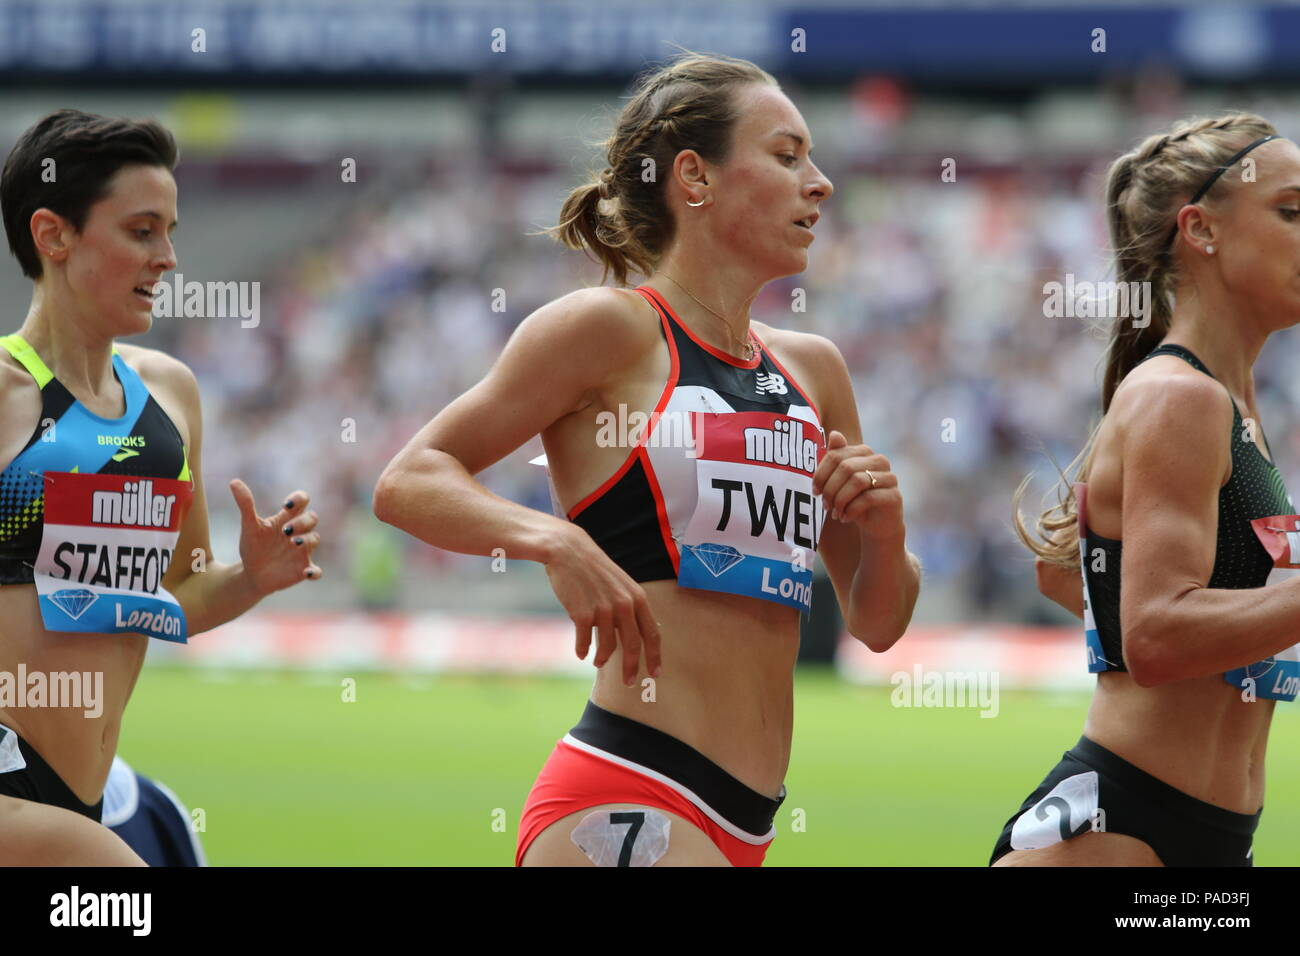 London, UK. 21st July, 2018. Stephanie TWELL (GBR) competing in the Women's 3000m at the IAAF Diamond League, Muller Anniversary Games, Queen Elizabeth Olympic, LONDON, UK 21 July 2018 Credit: Grant Burton/Alamy Live News - Stock Image